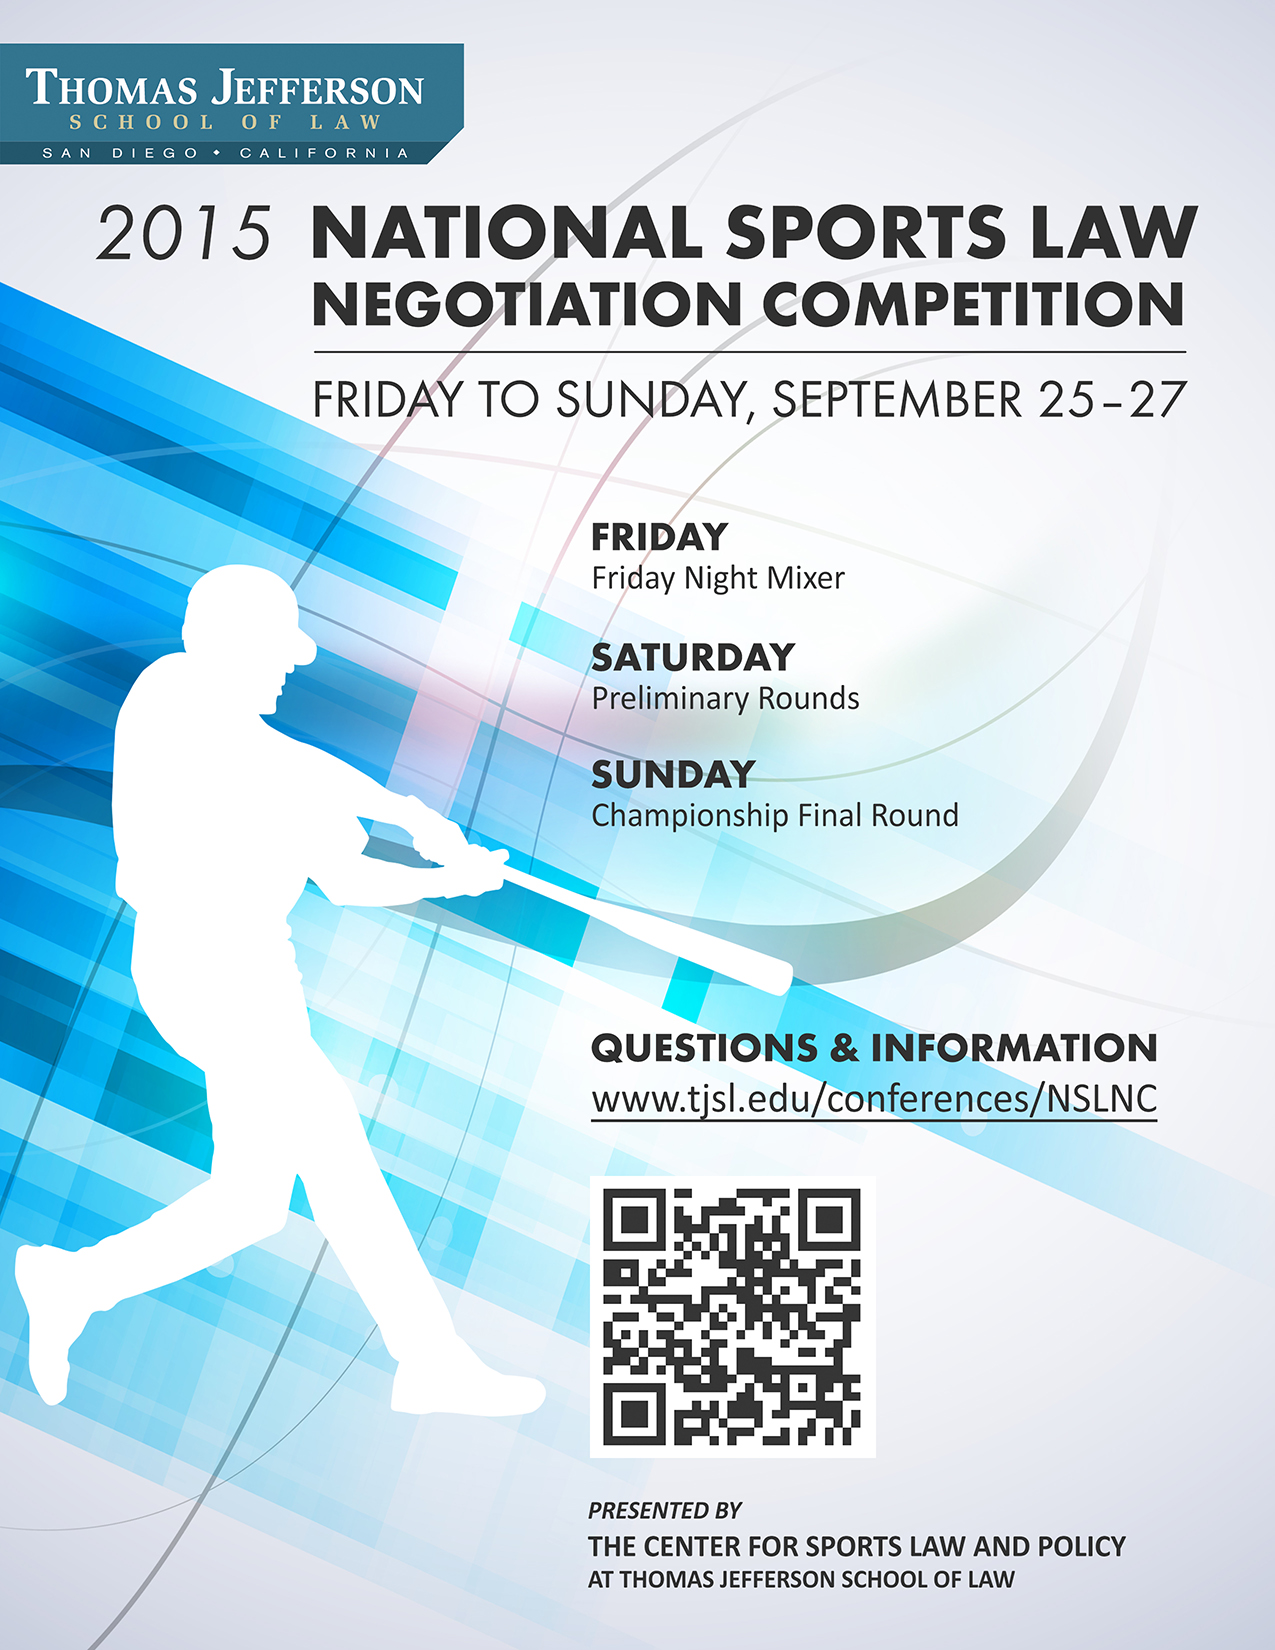 2015 National Sports Law Negotiation Competition